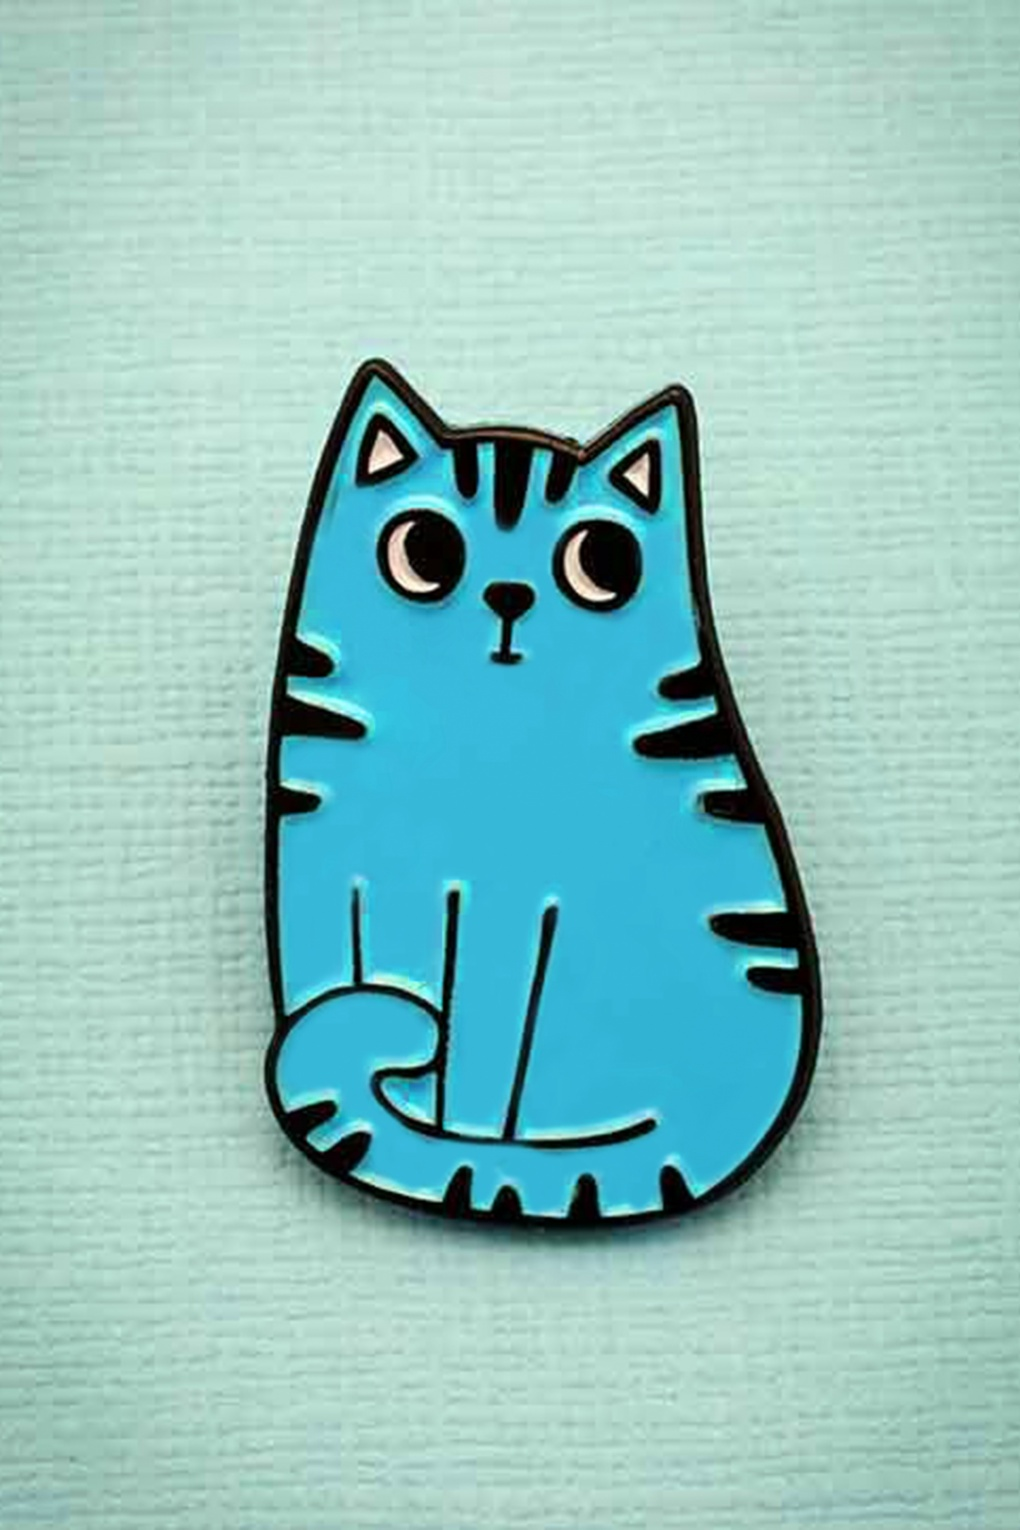 1960s Costume Jewelry – 1960s Style Jewelry 60s My Blue Cat Enamel Pin £8.05 AT vintagedancer.com